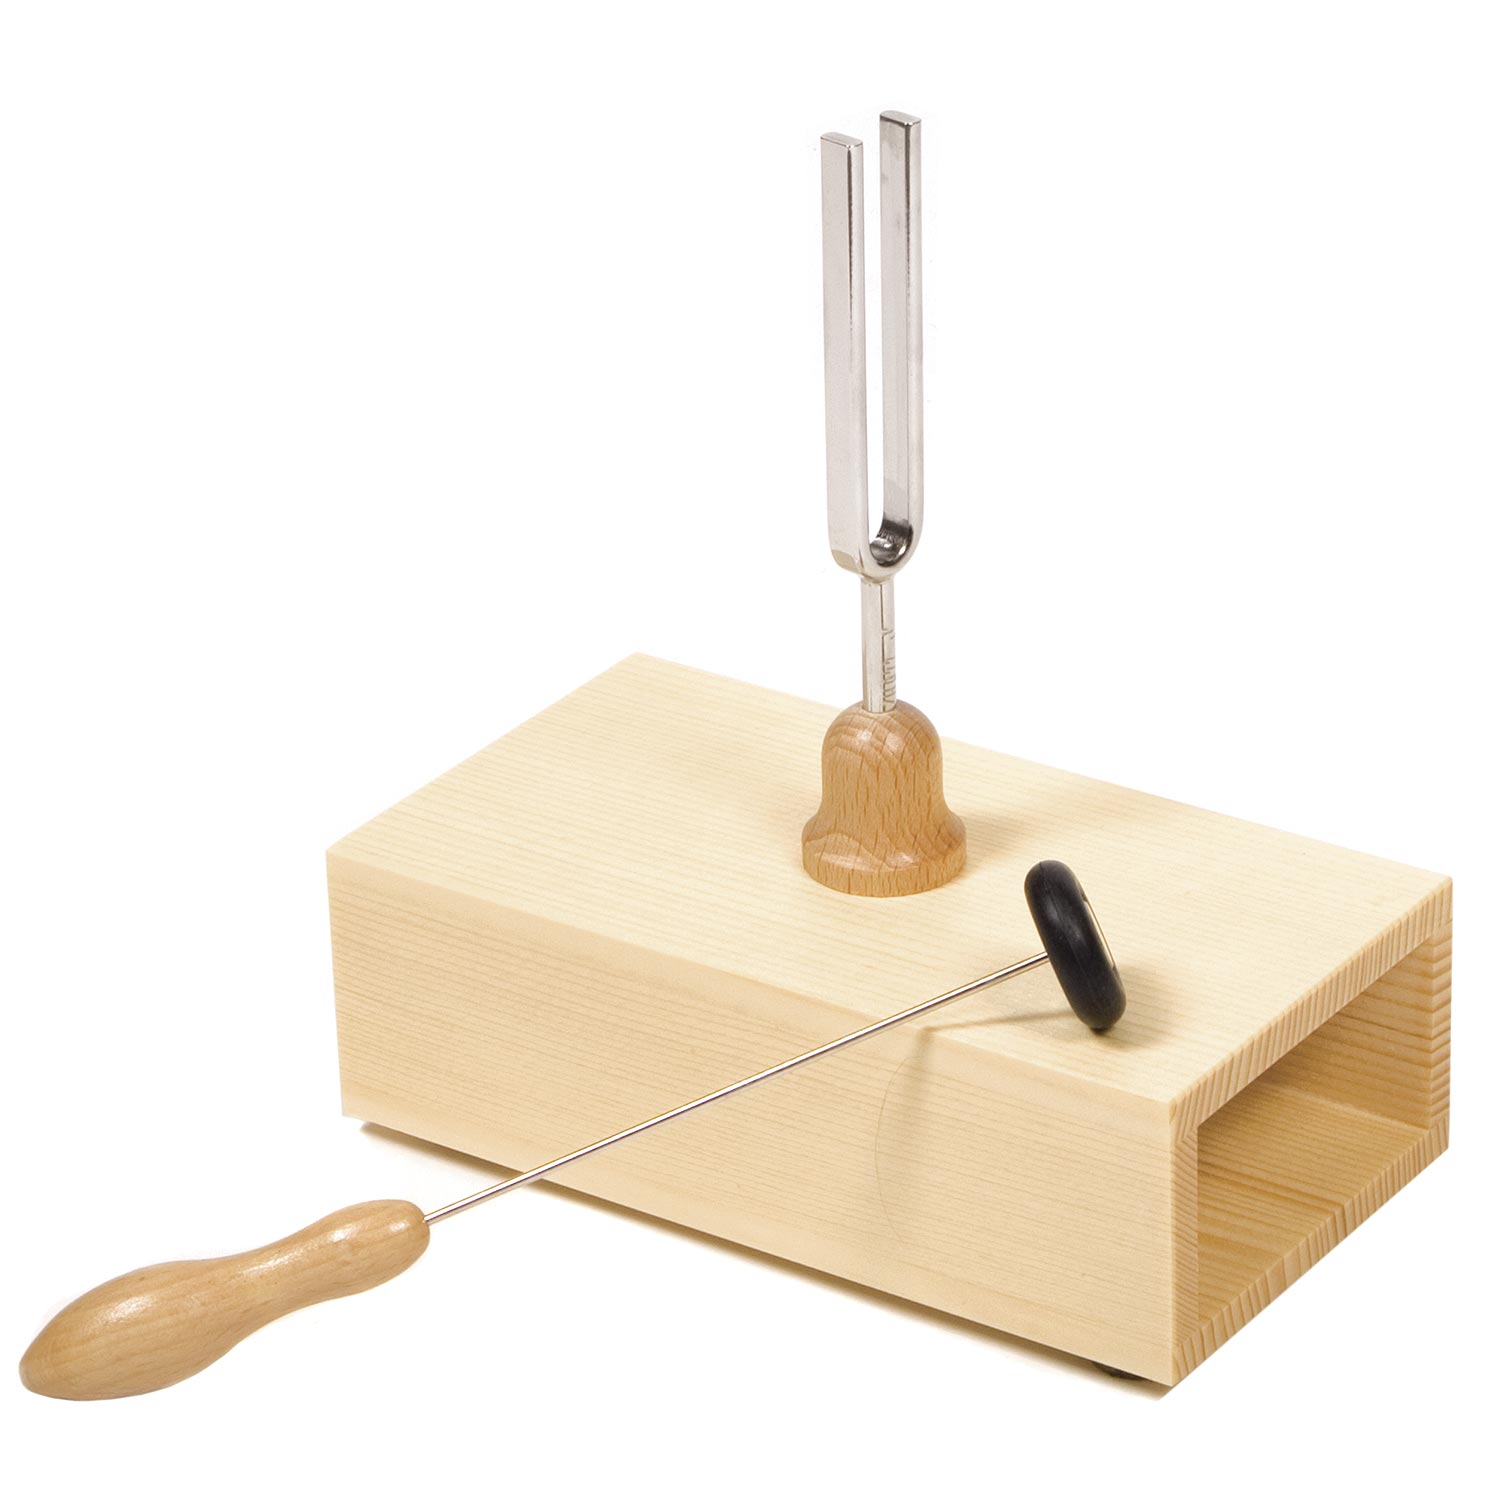 Wittner Tuning Fork with Wood Resonator Box A440 by